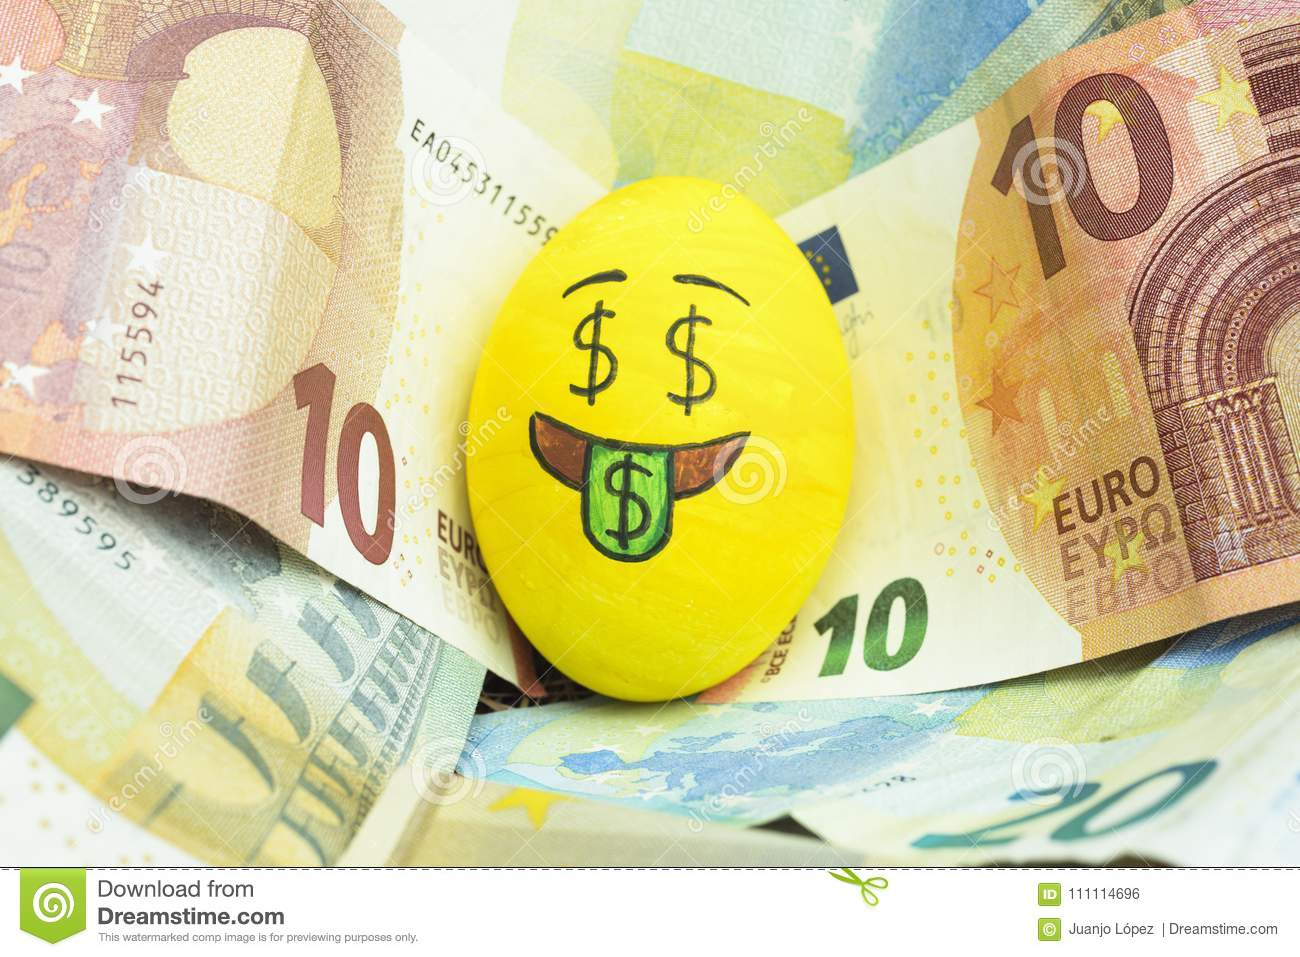 Emoji Easter egg with facial expression `I love money` placed on euro paper money